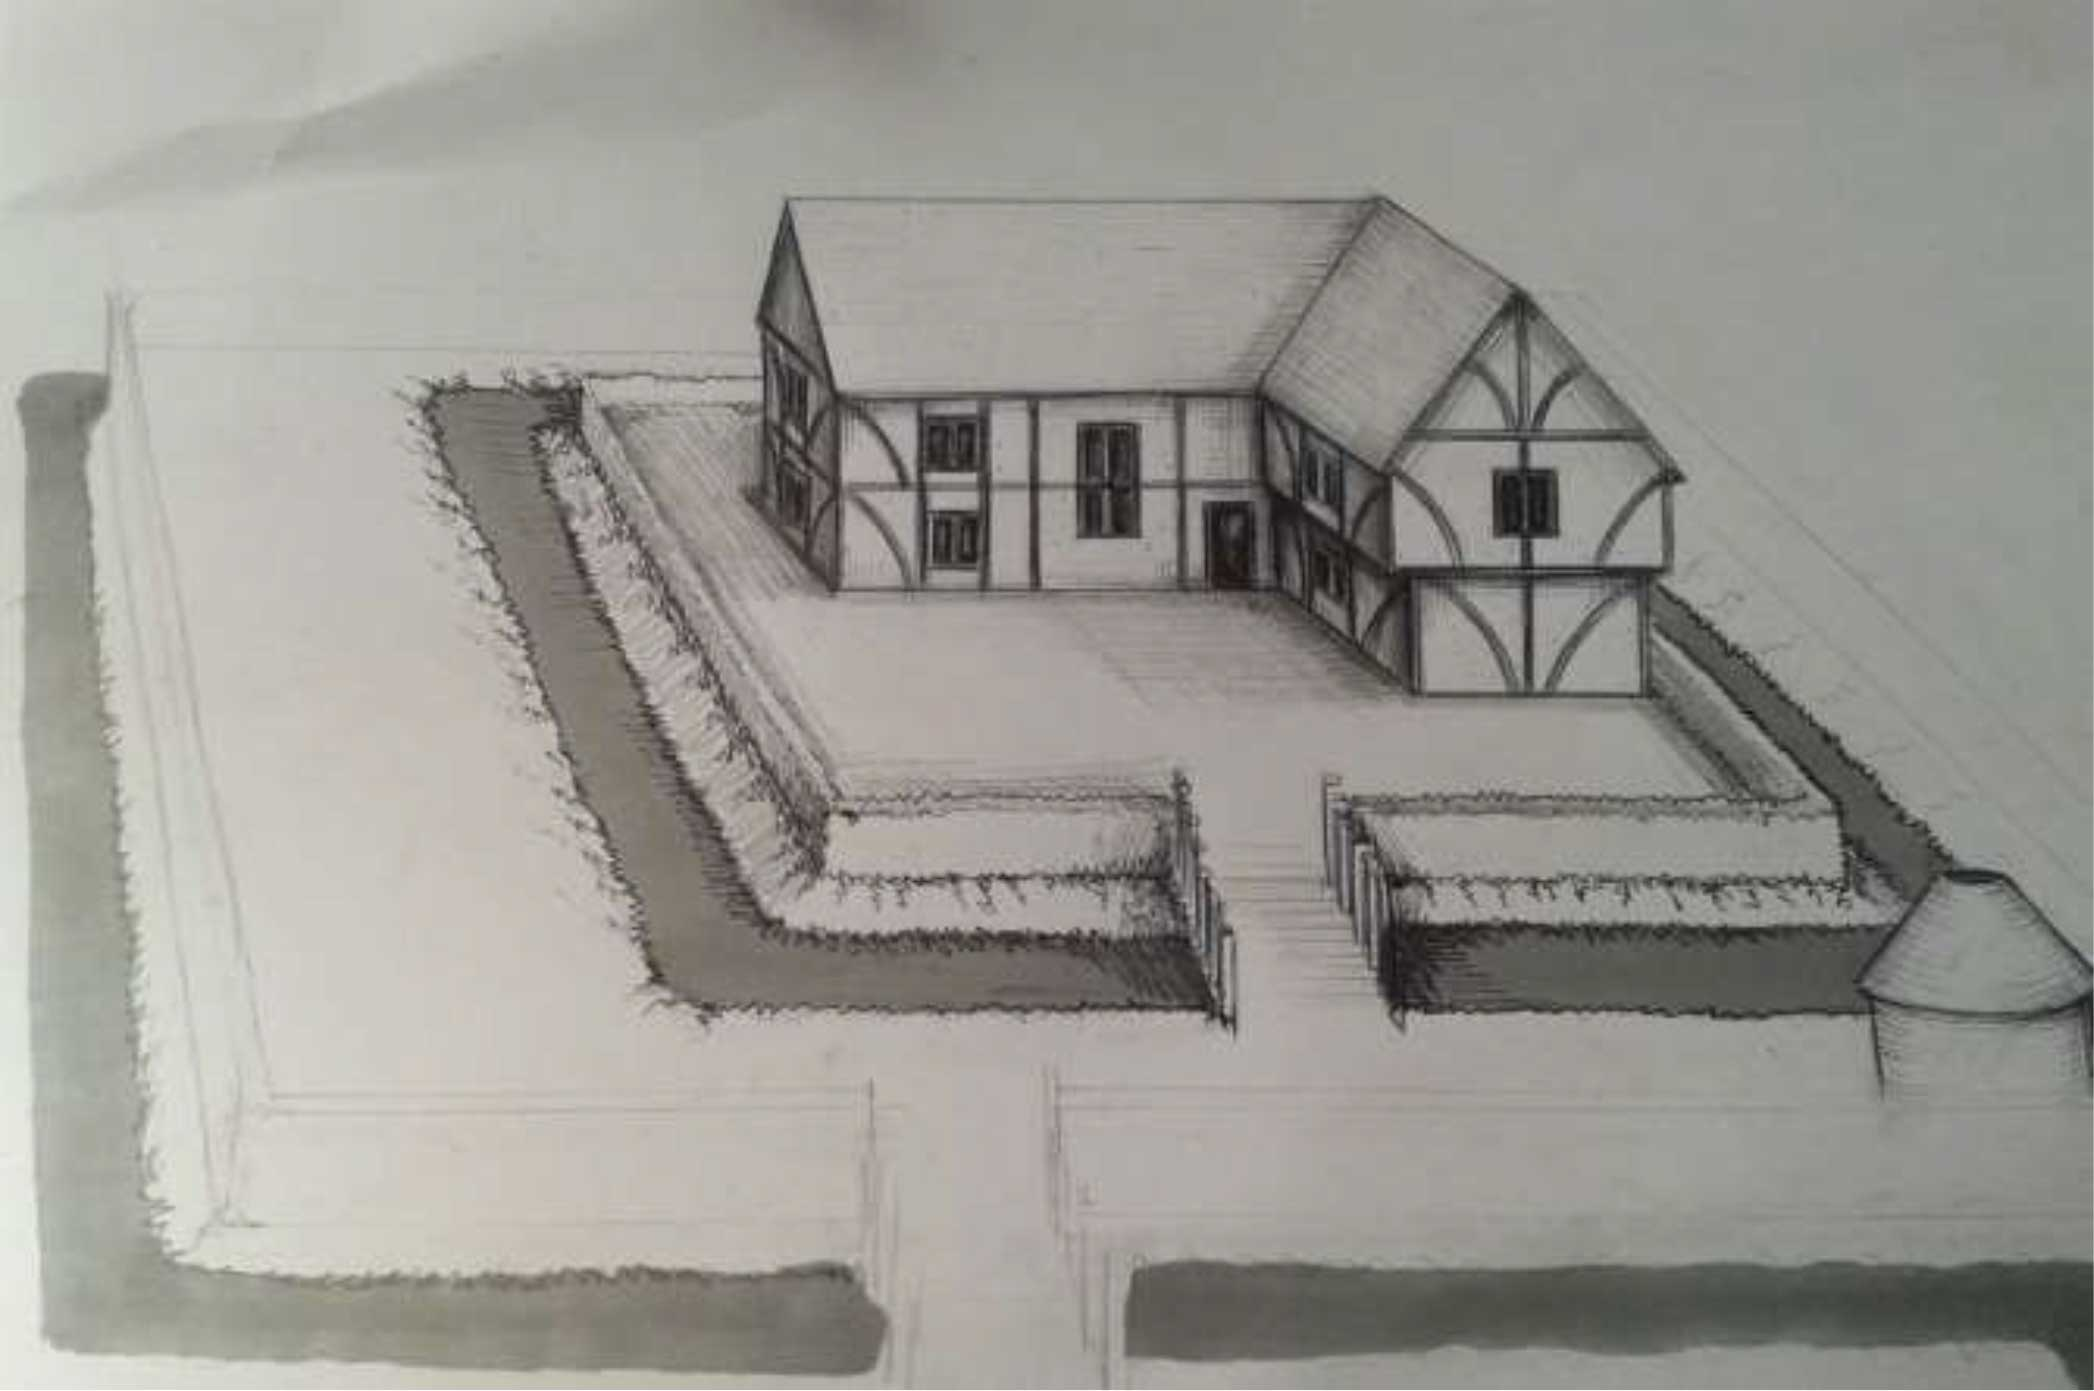 whs_00363-penleigh-moated-site-artist's-impression - Archaeology